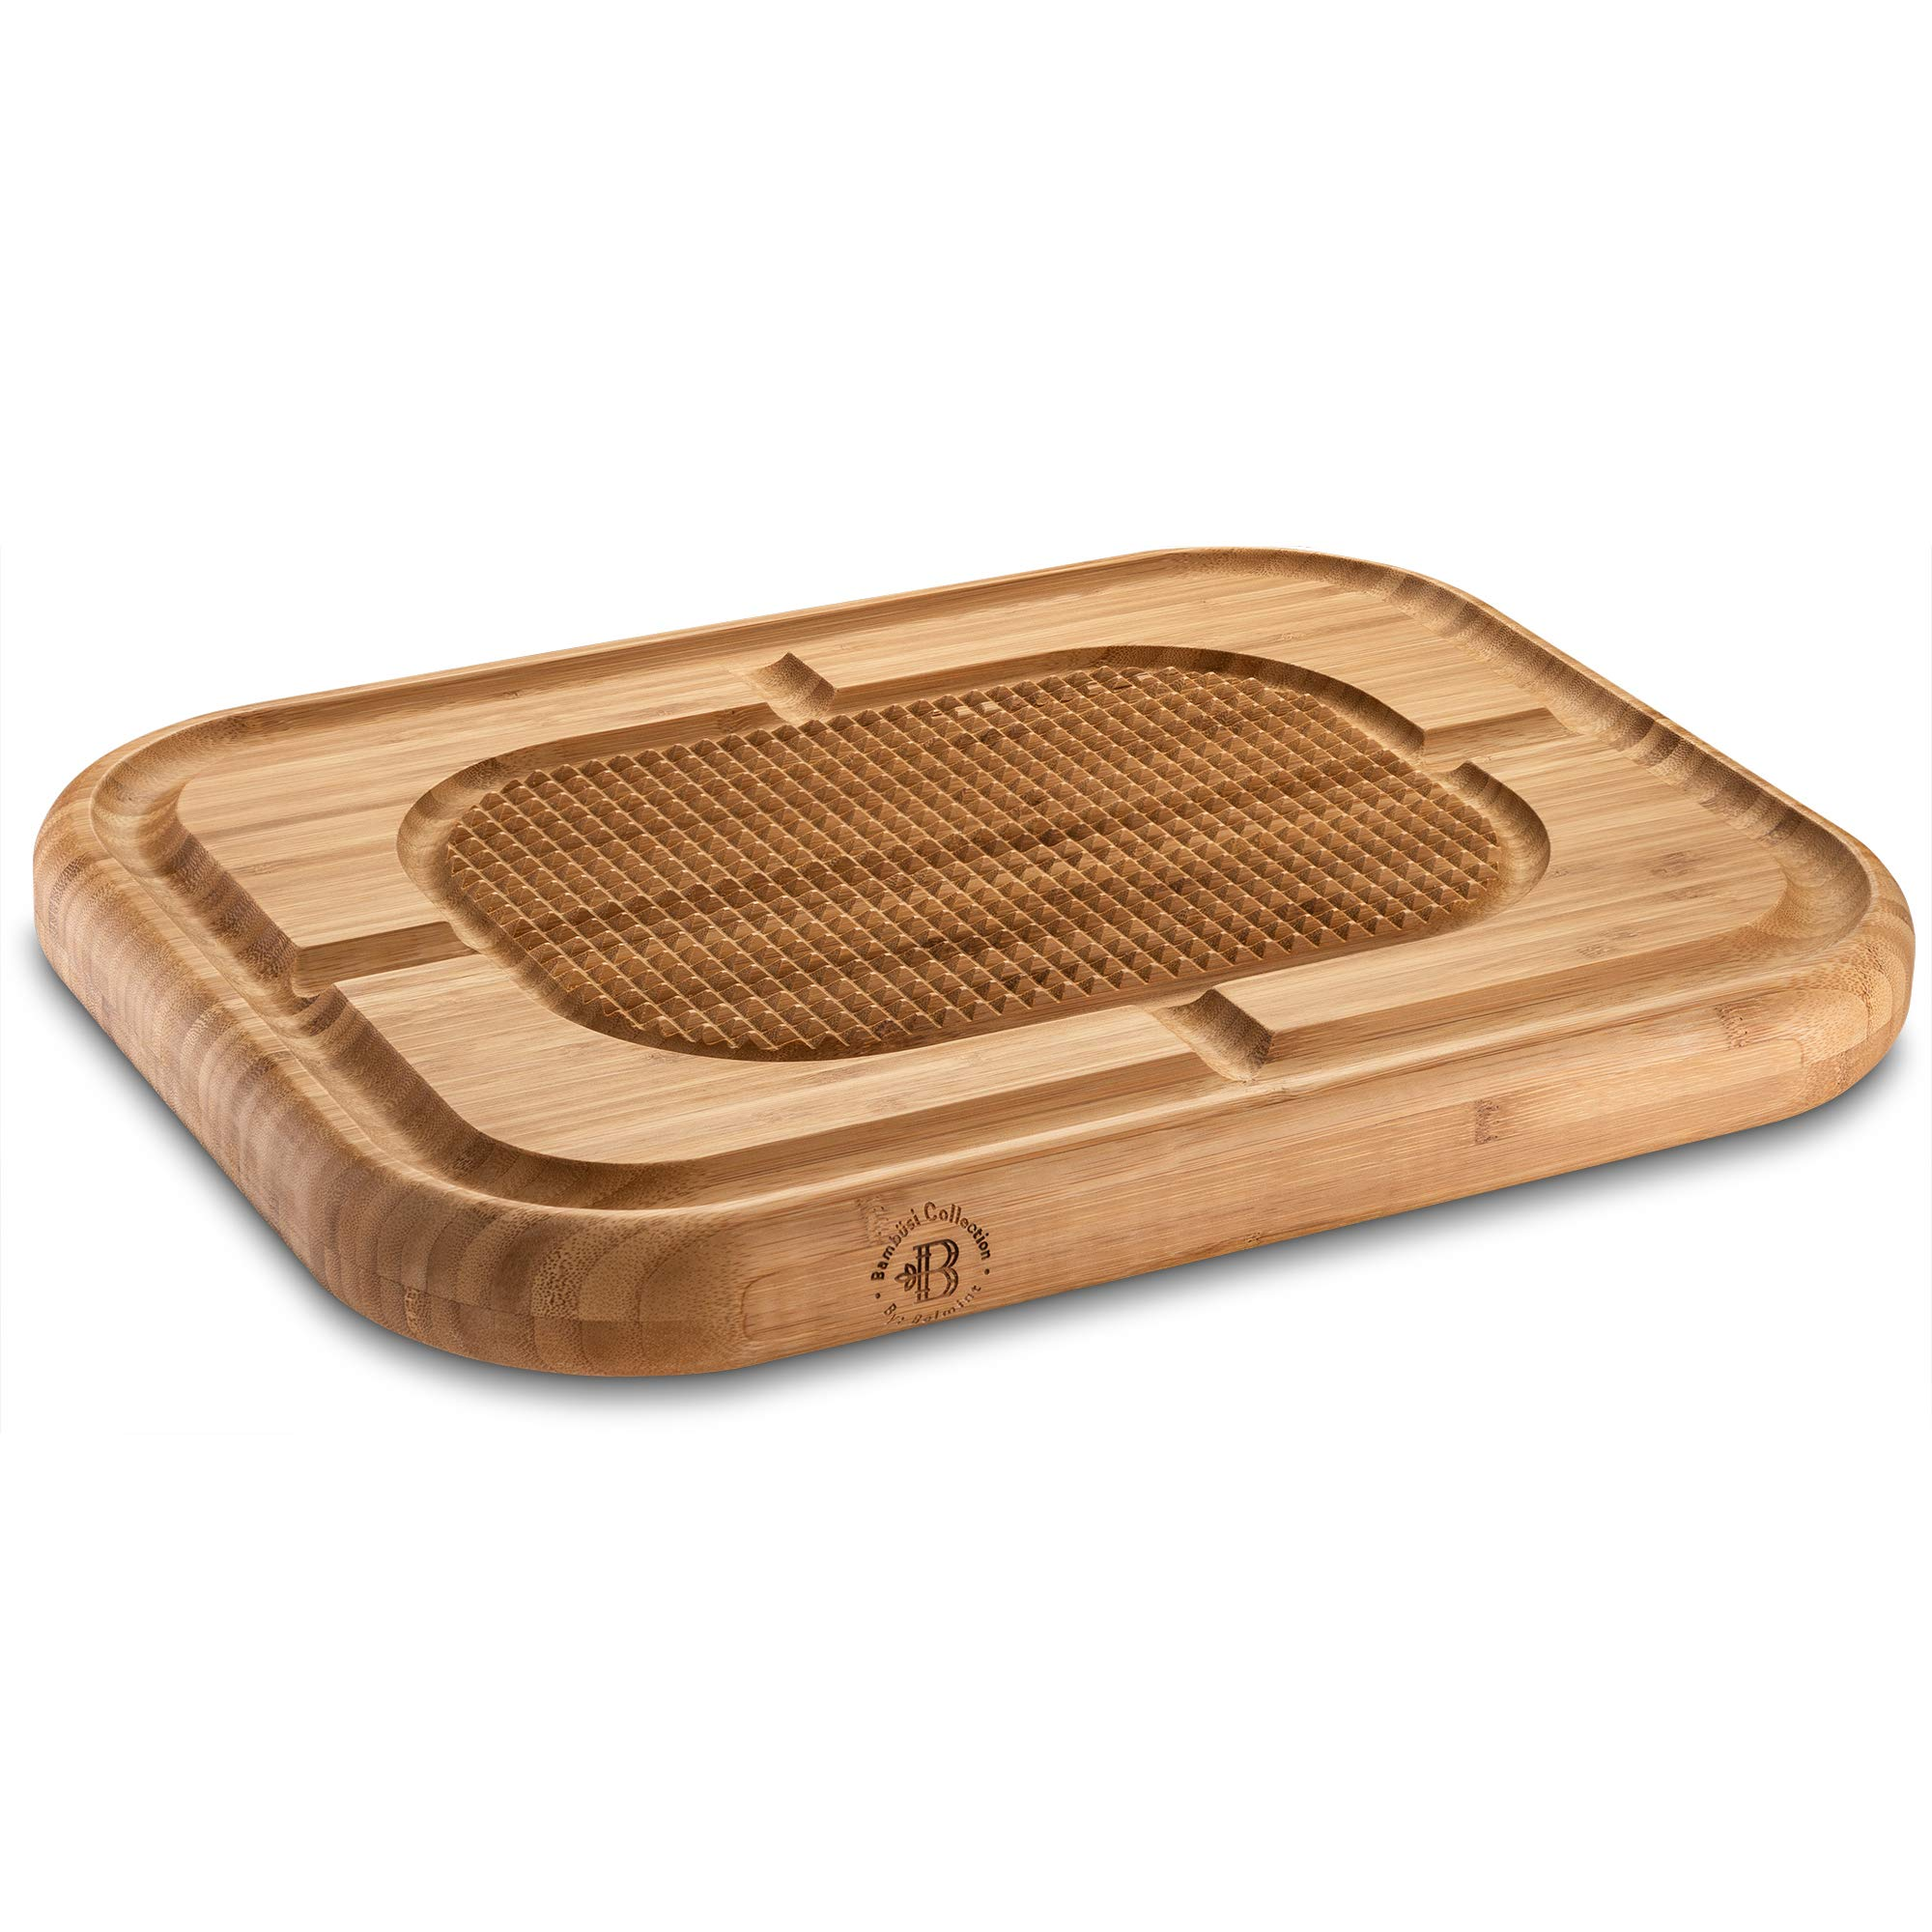 Bambusi Large Carving Cutting Board - 100% Natural Bamboo Meat Serving Tray with Deep Juice Grooves | Stabilizes Beef & Poultry While Chopping | Large 17''x13''